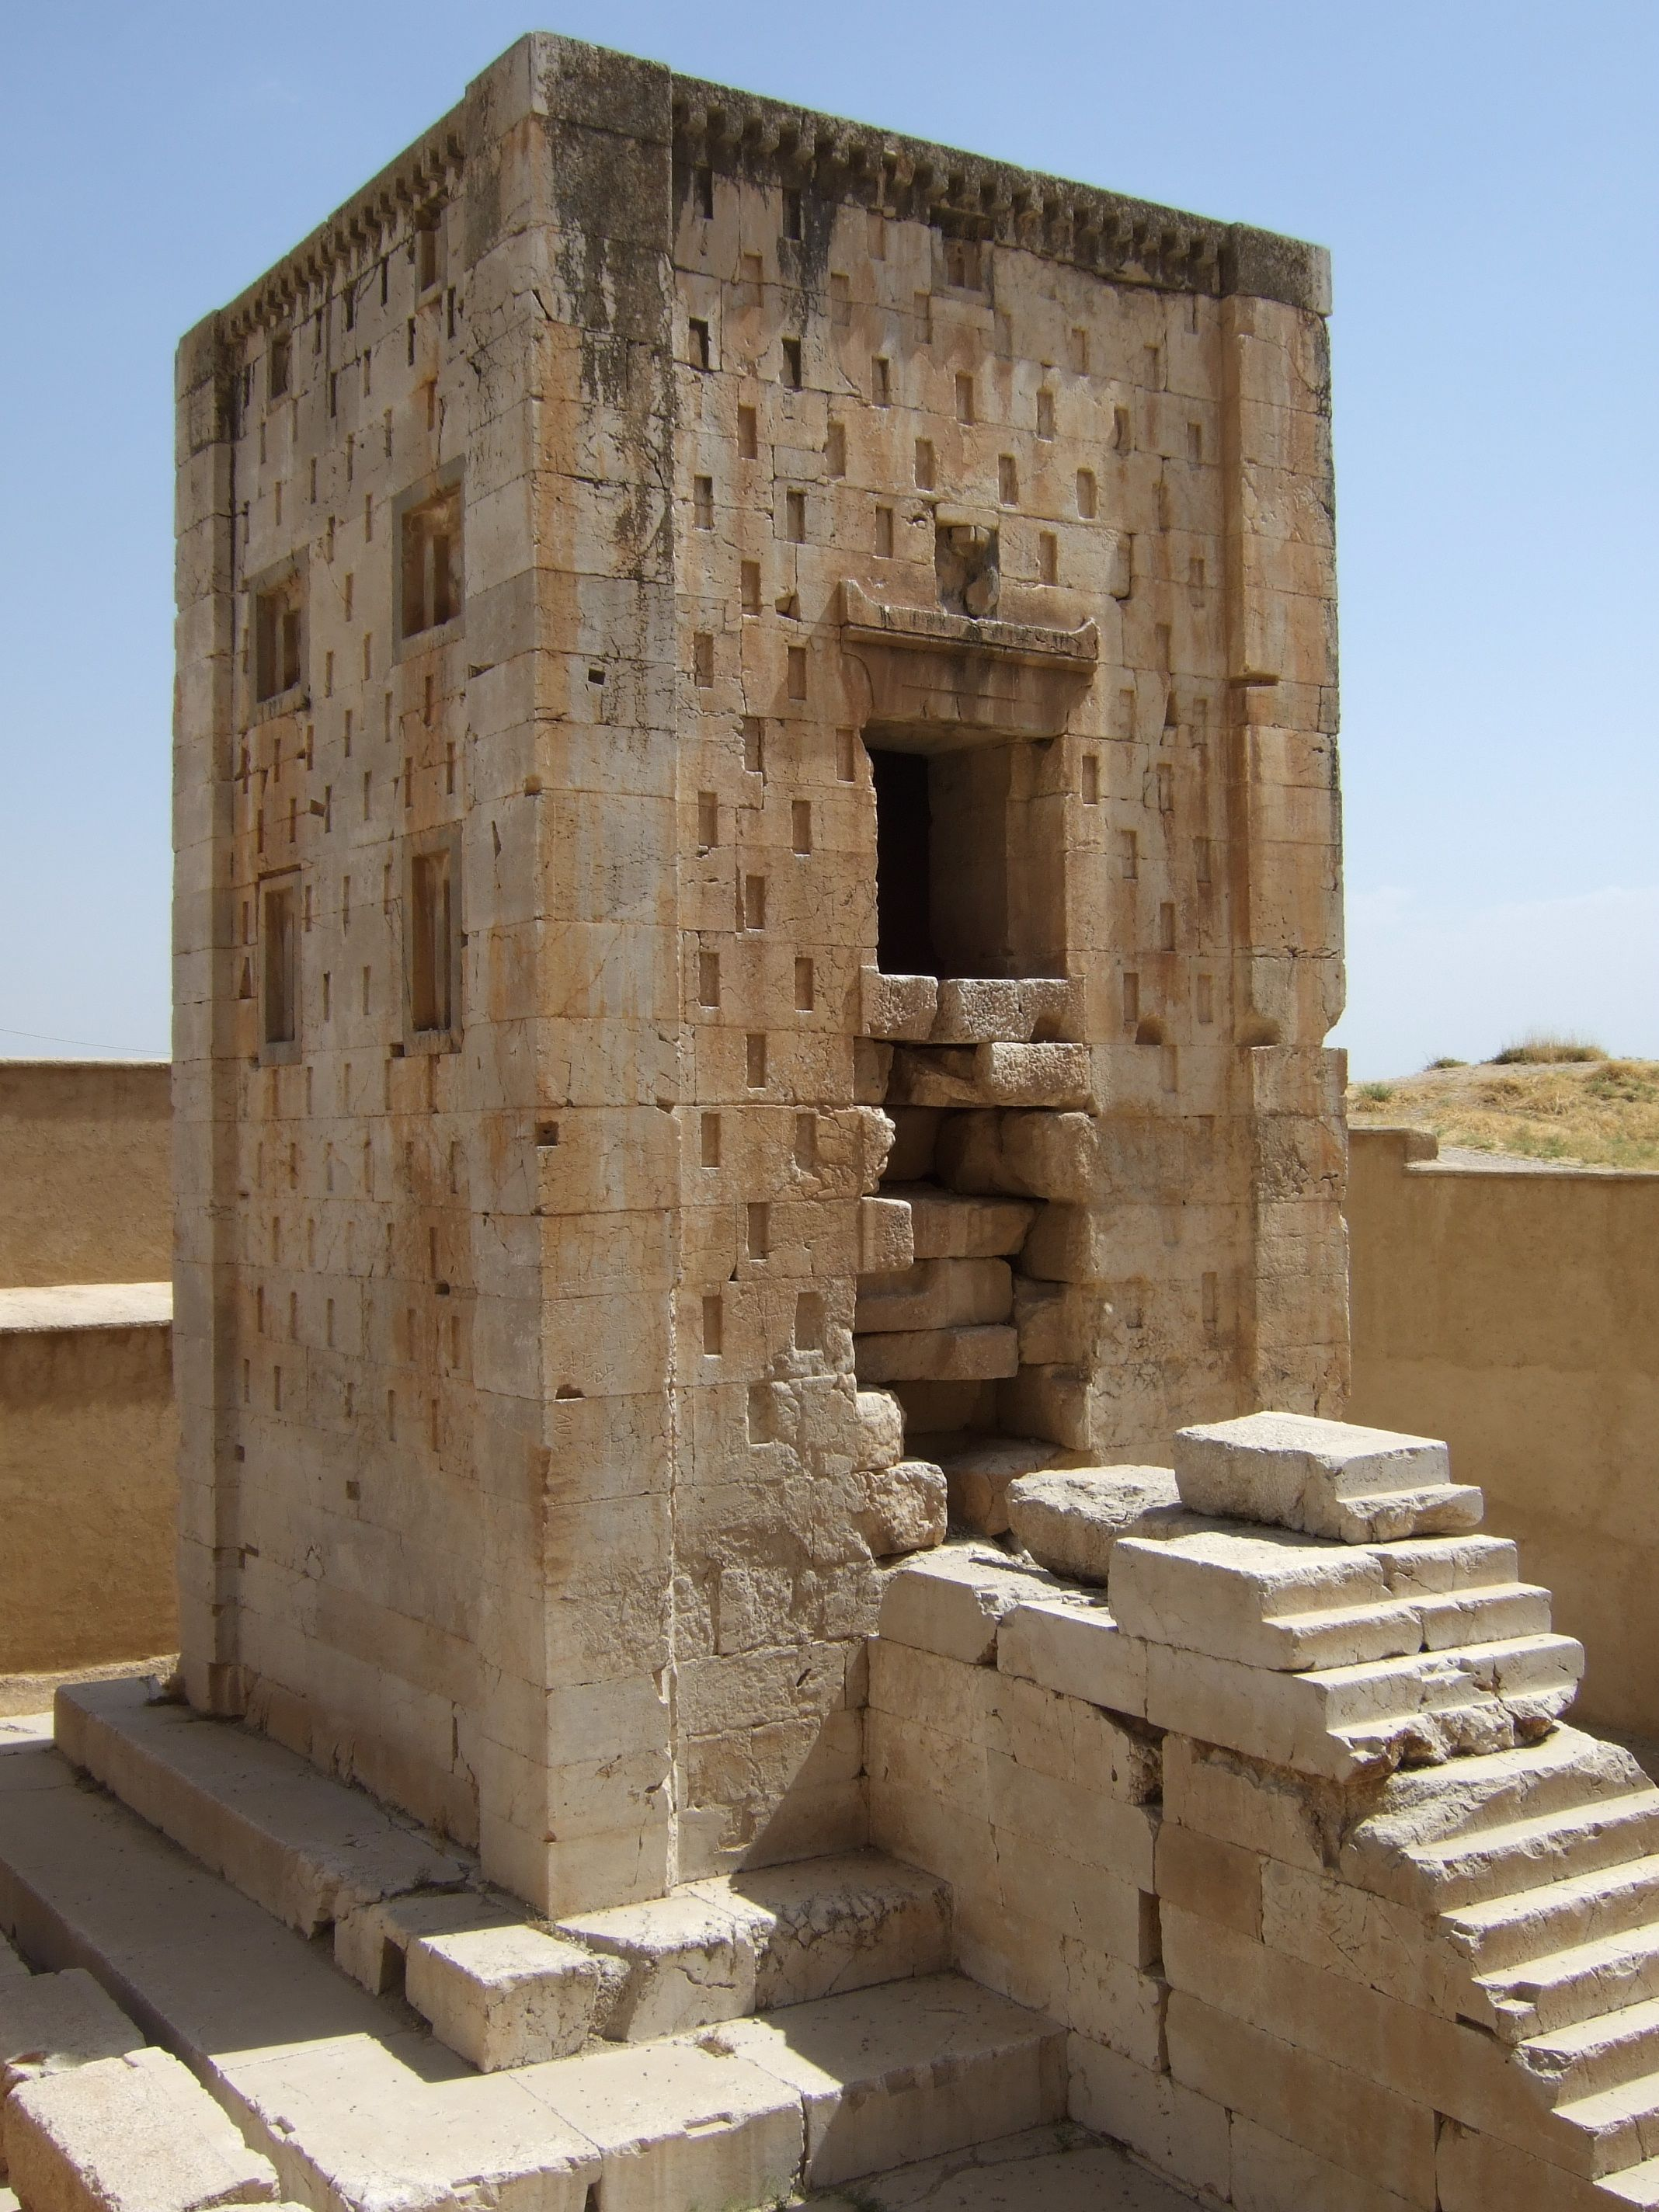 "The Ka'ba-ye Zartosht (""Cube of Zoroaster"") is a 5th century BC Achaemenid-era tower-like construction at Naqsh-e Rustam, northwest of Persepolis, Iran. The name probably dates to the 14th c., when many pre-Islamic sites were identified with figures and events of the Qur'ān or the Shāhnāme. The structure is not actually a Zoroastrian shrine. The structure, which is a copy of a sister building at Pasargadae, was built either by Darius I when he moved to Persepolis, by Artaxerxes II or III."